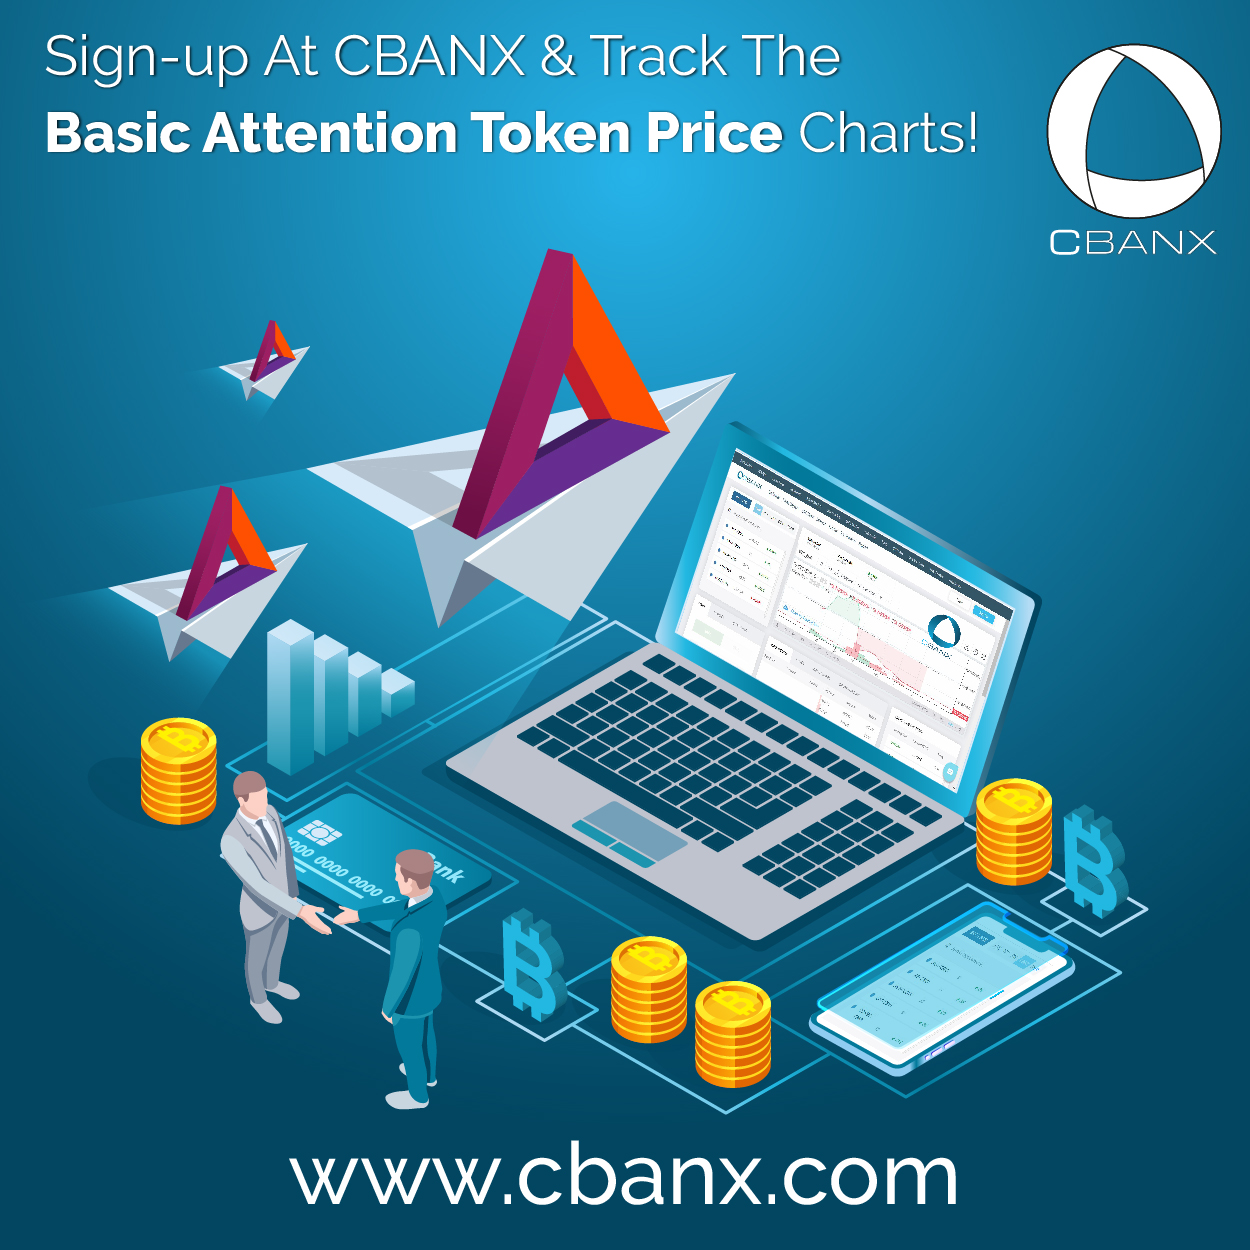 Sign-up At CBANX & Track The Basic Attention Token Price Charts!